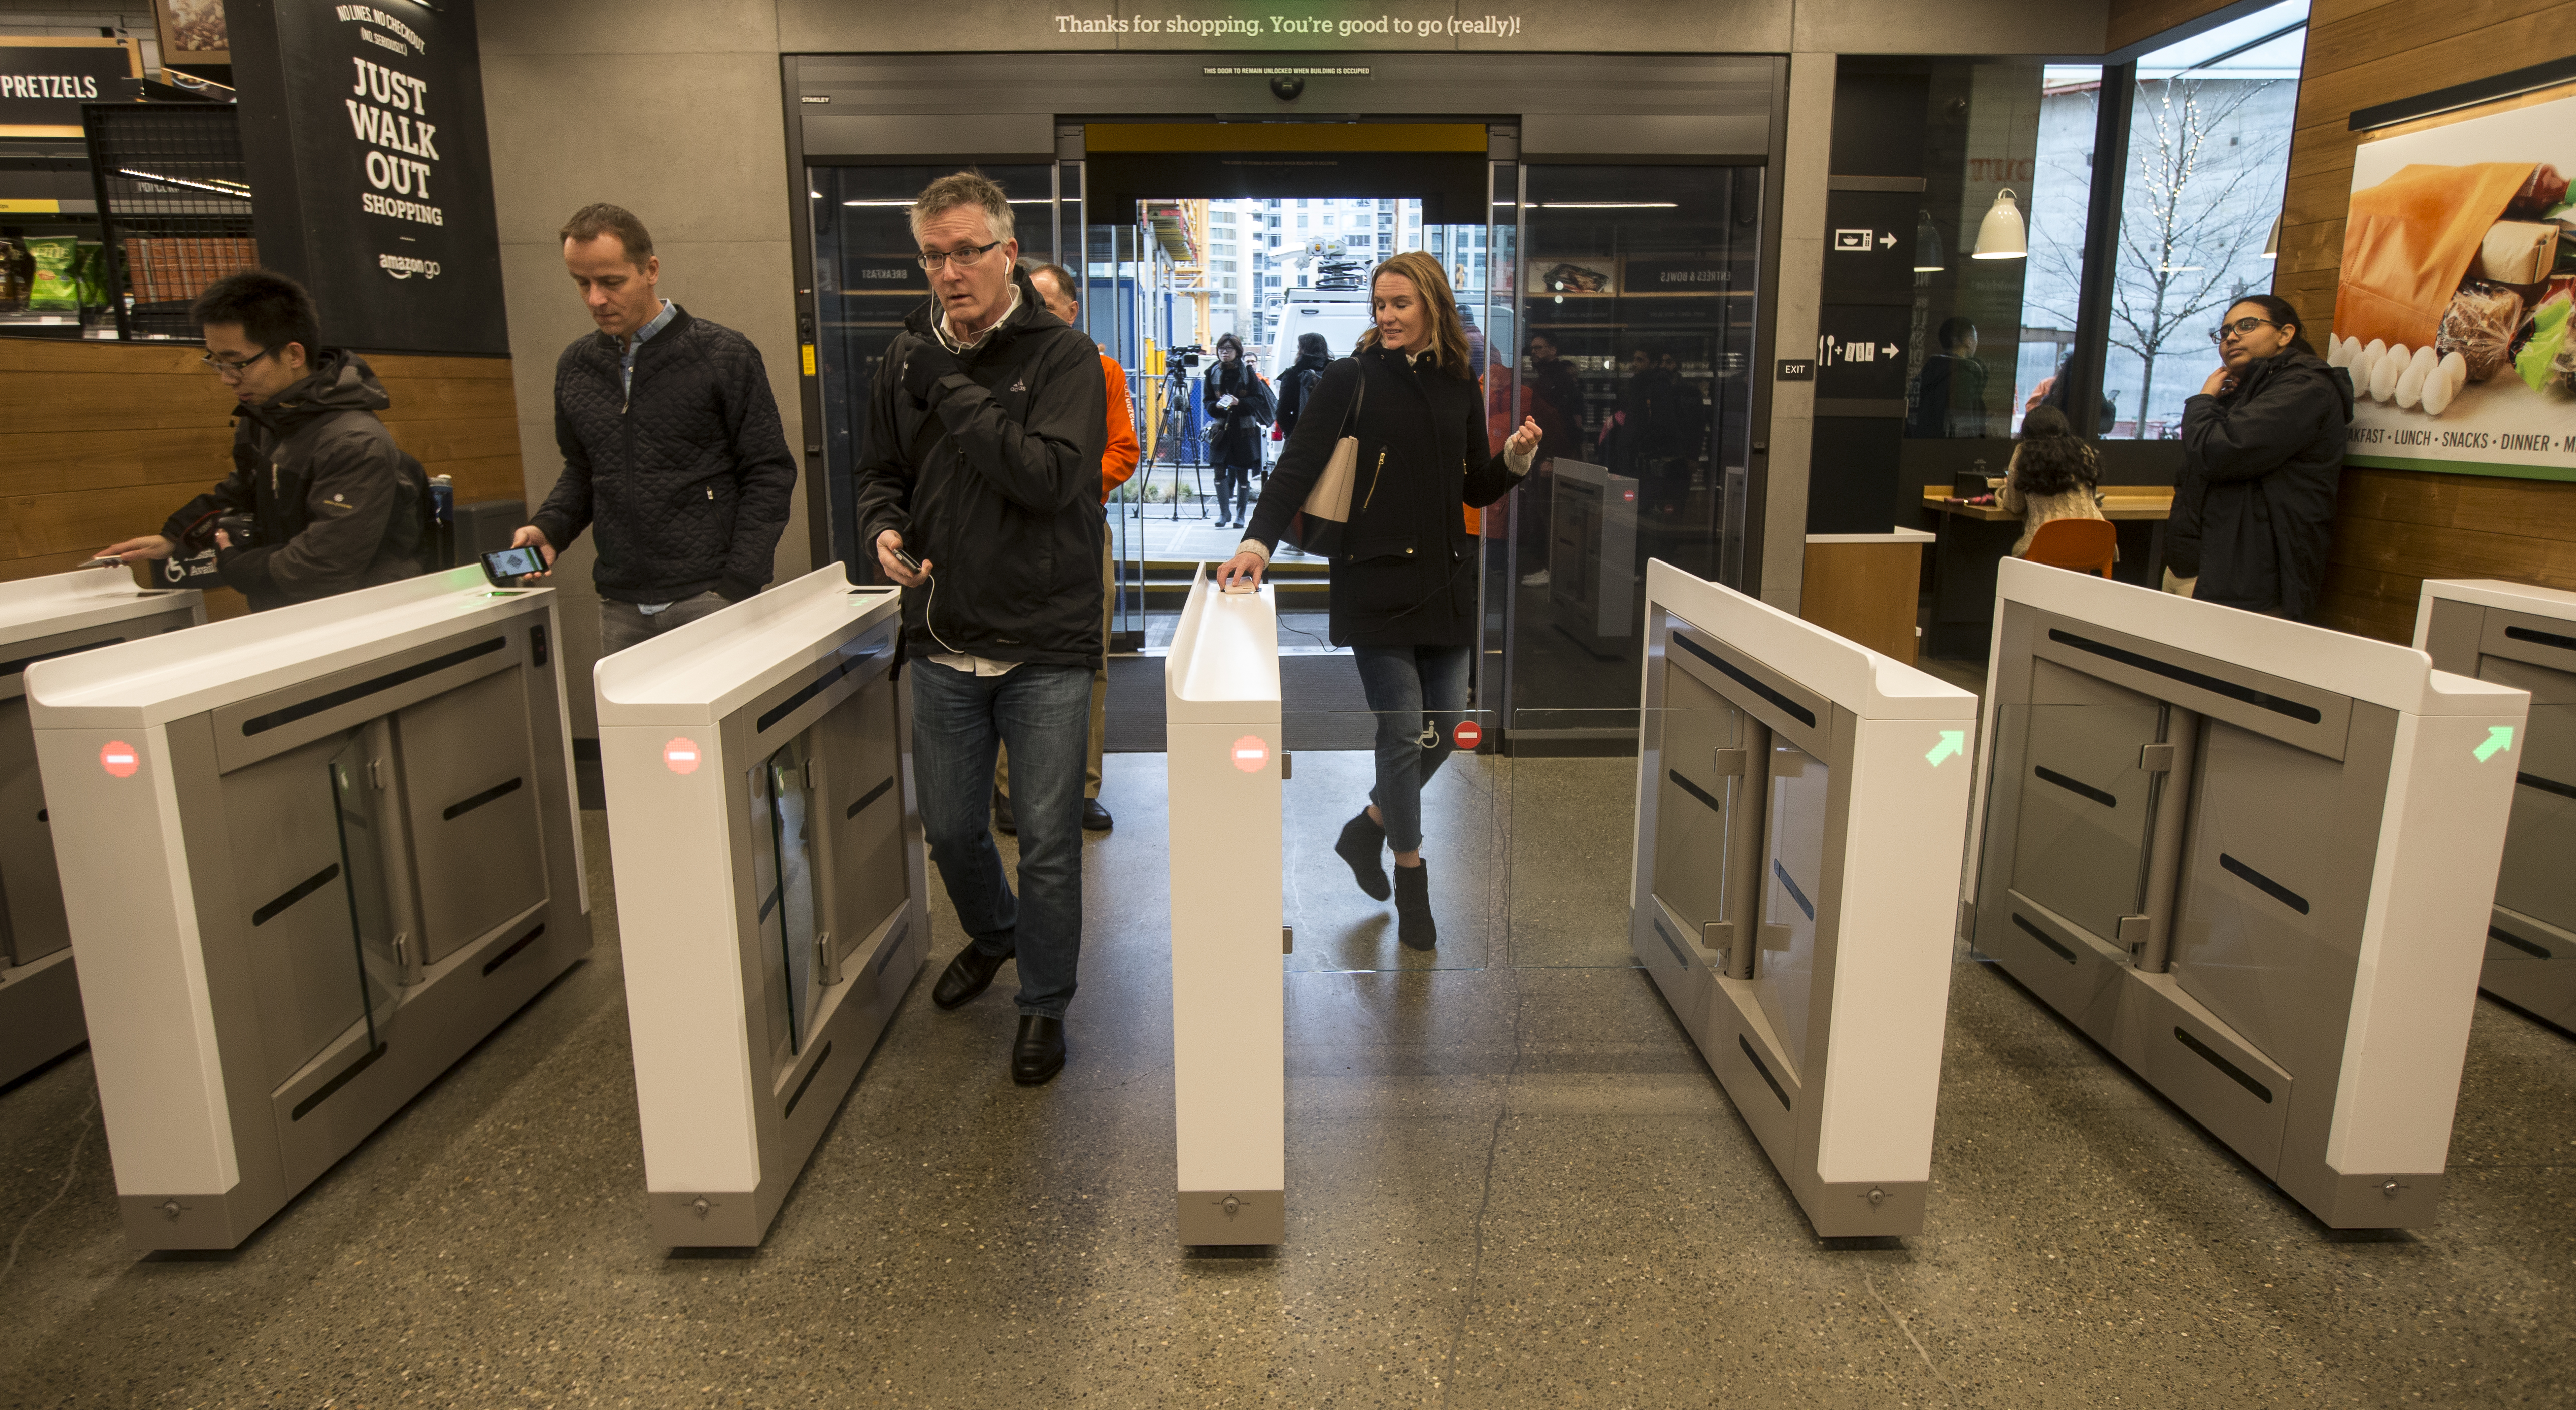 Shoppers scan the Amazon Go app on the mobile devices as the enter the Amazon Go store, on January 22, 2018 in Seattle, Washington.